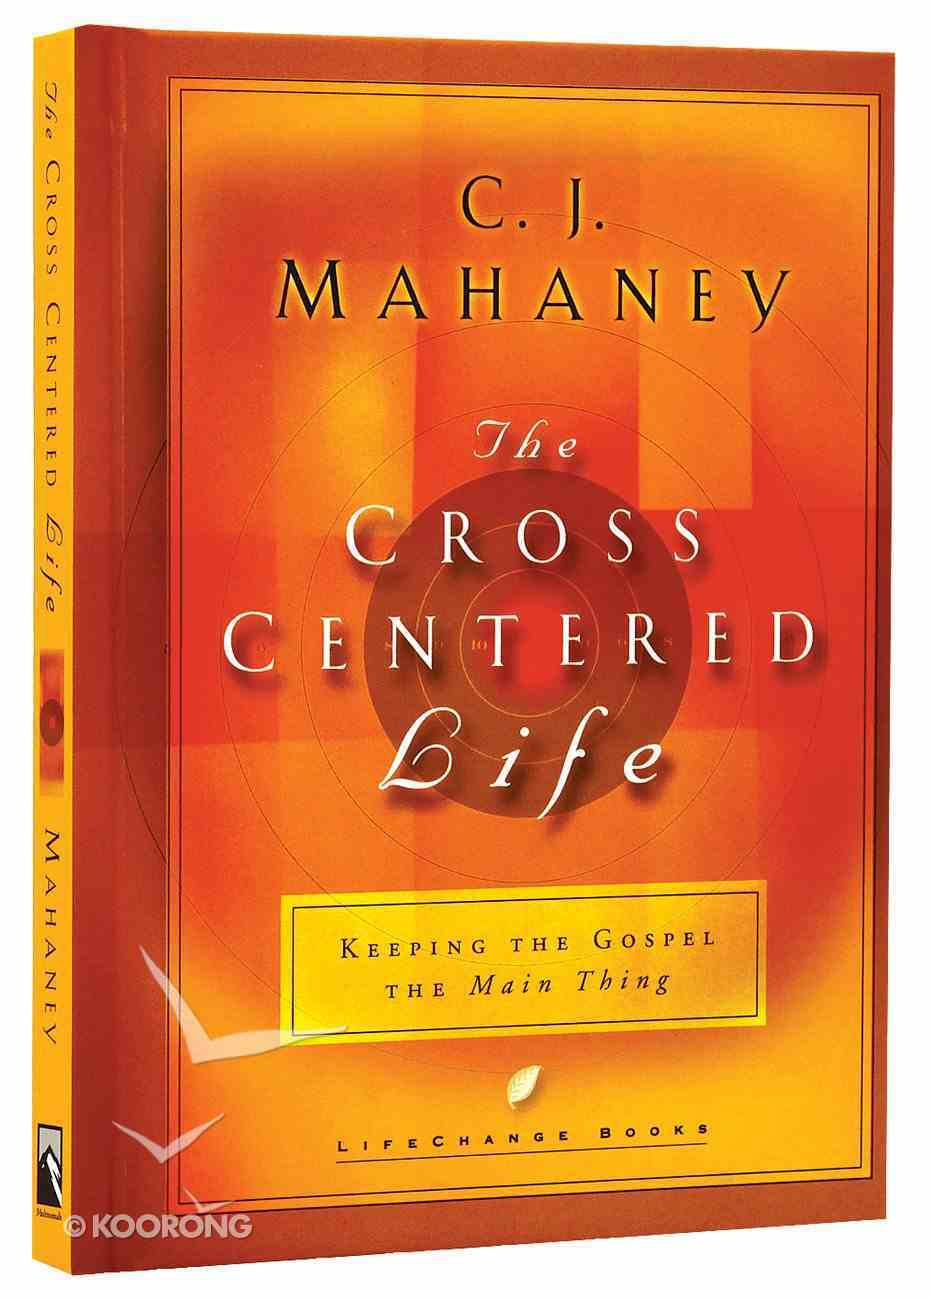 Cross Centred Life, The: Experience the Power of the Gospel (Lifechange Books Series) Hardback